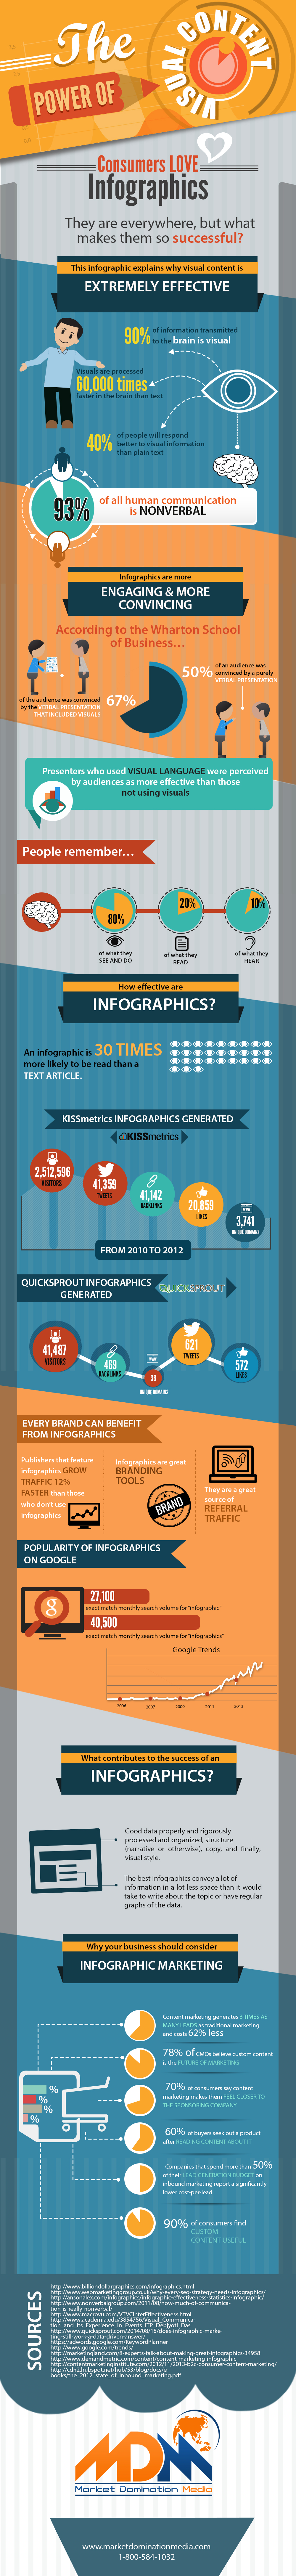 Why Are Infographics So Darn Effective? [Infographic]